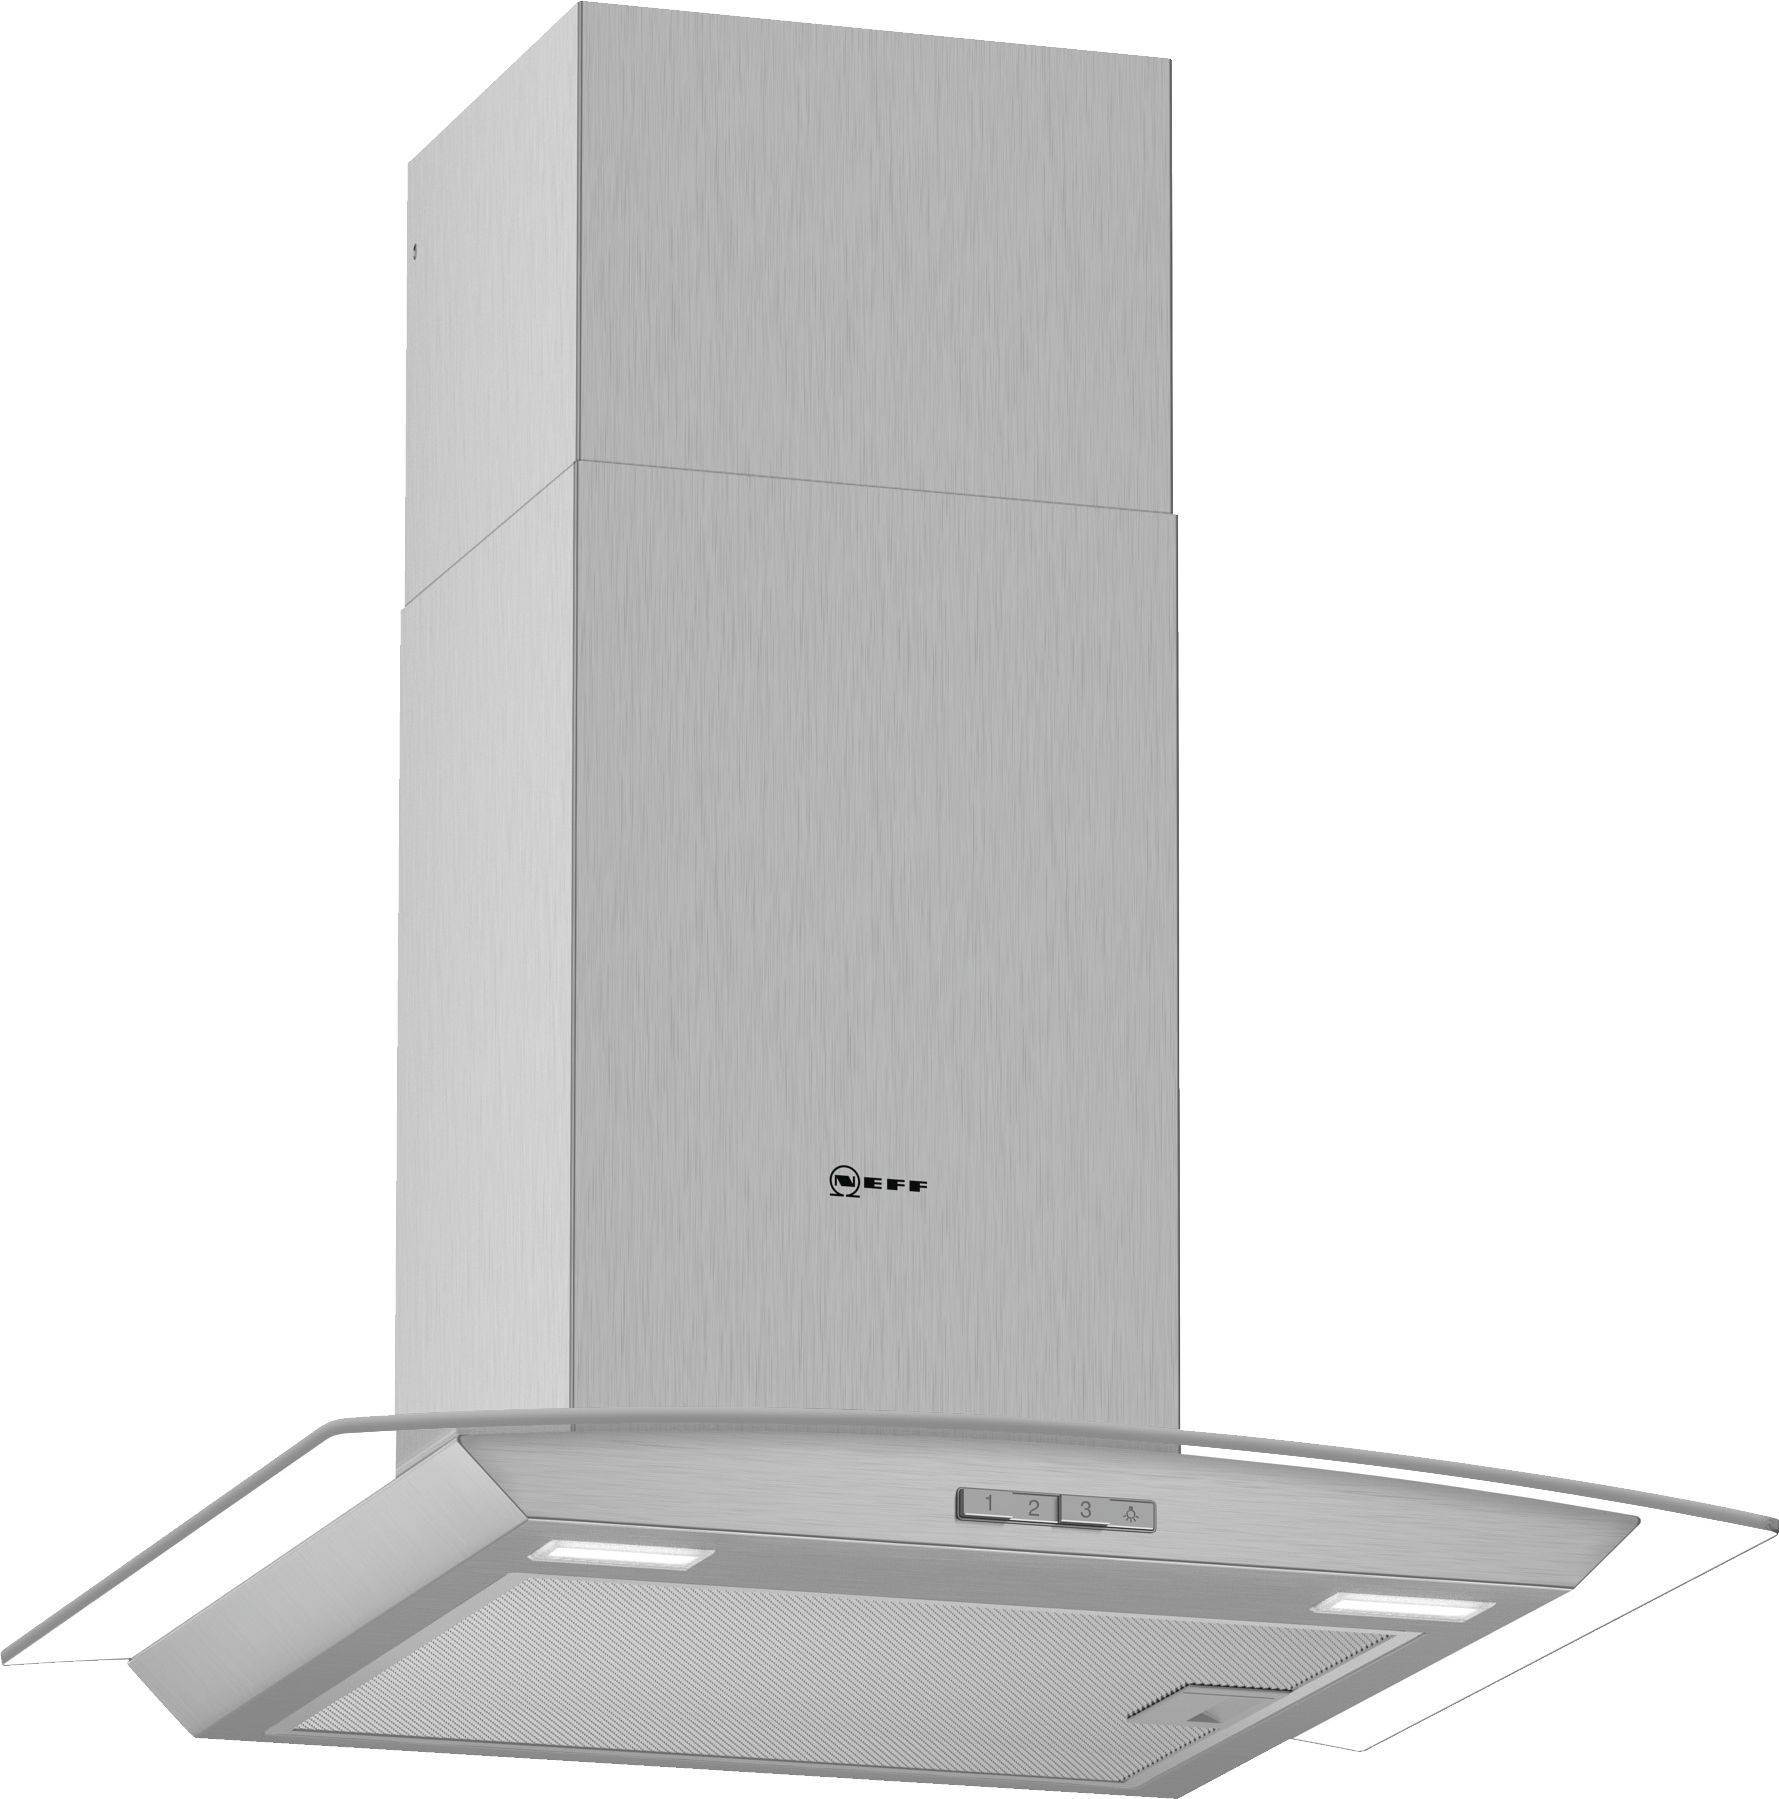 Neff D64ABC0N0B 60cm Curved Chimney Cooker Hood - Stainless Steel